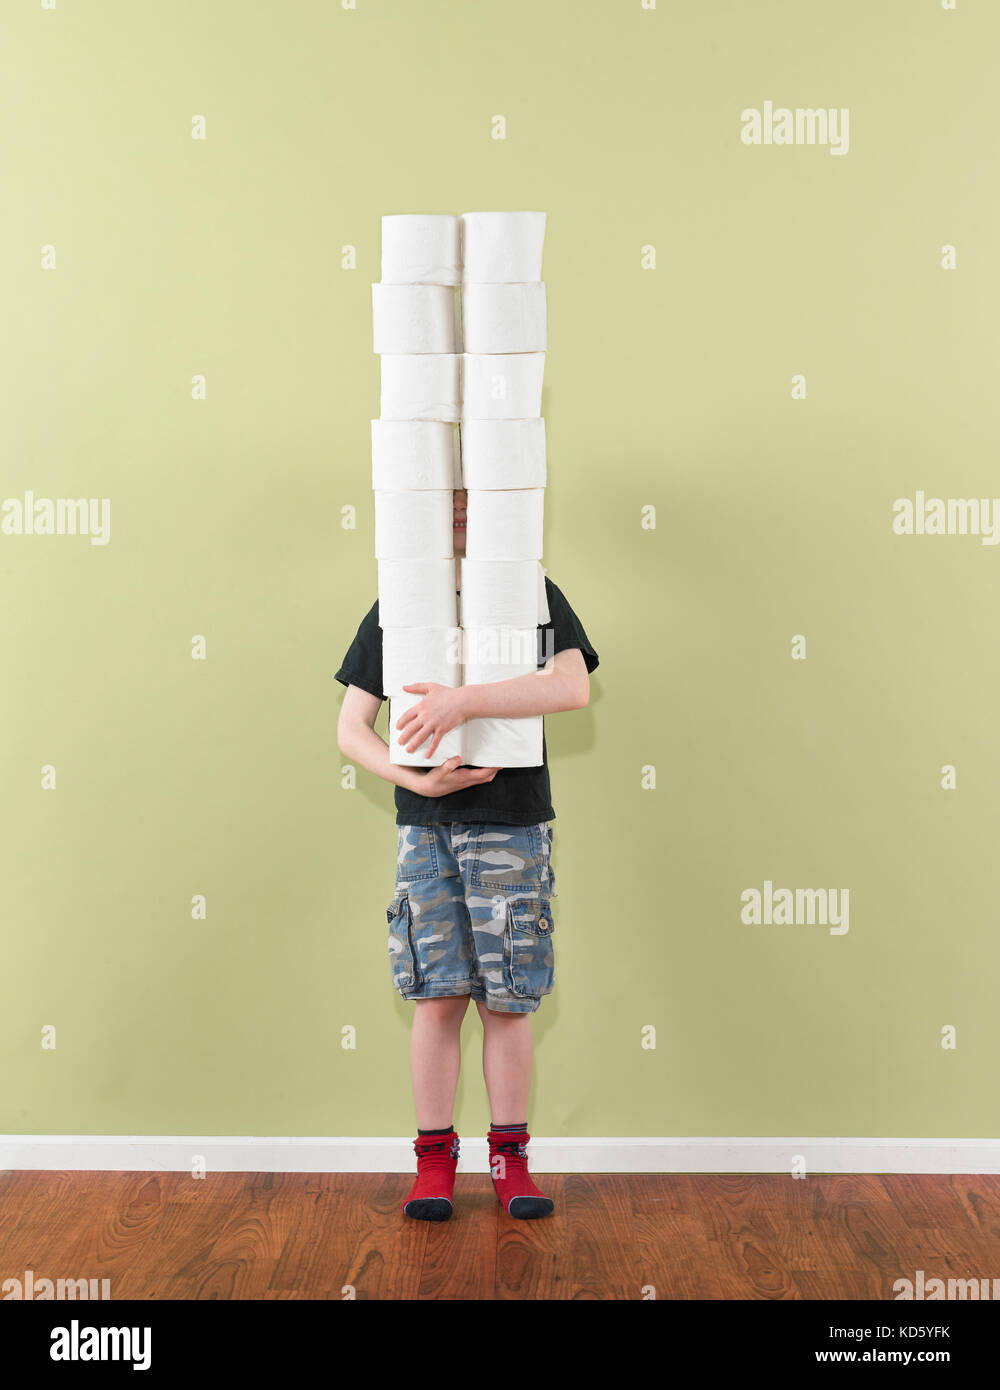 boy 4-7 balancing two stacks of toilet paper - Stock Image